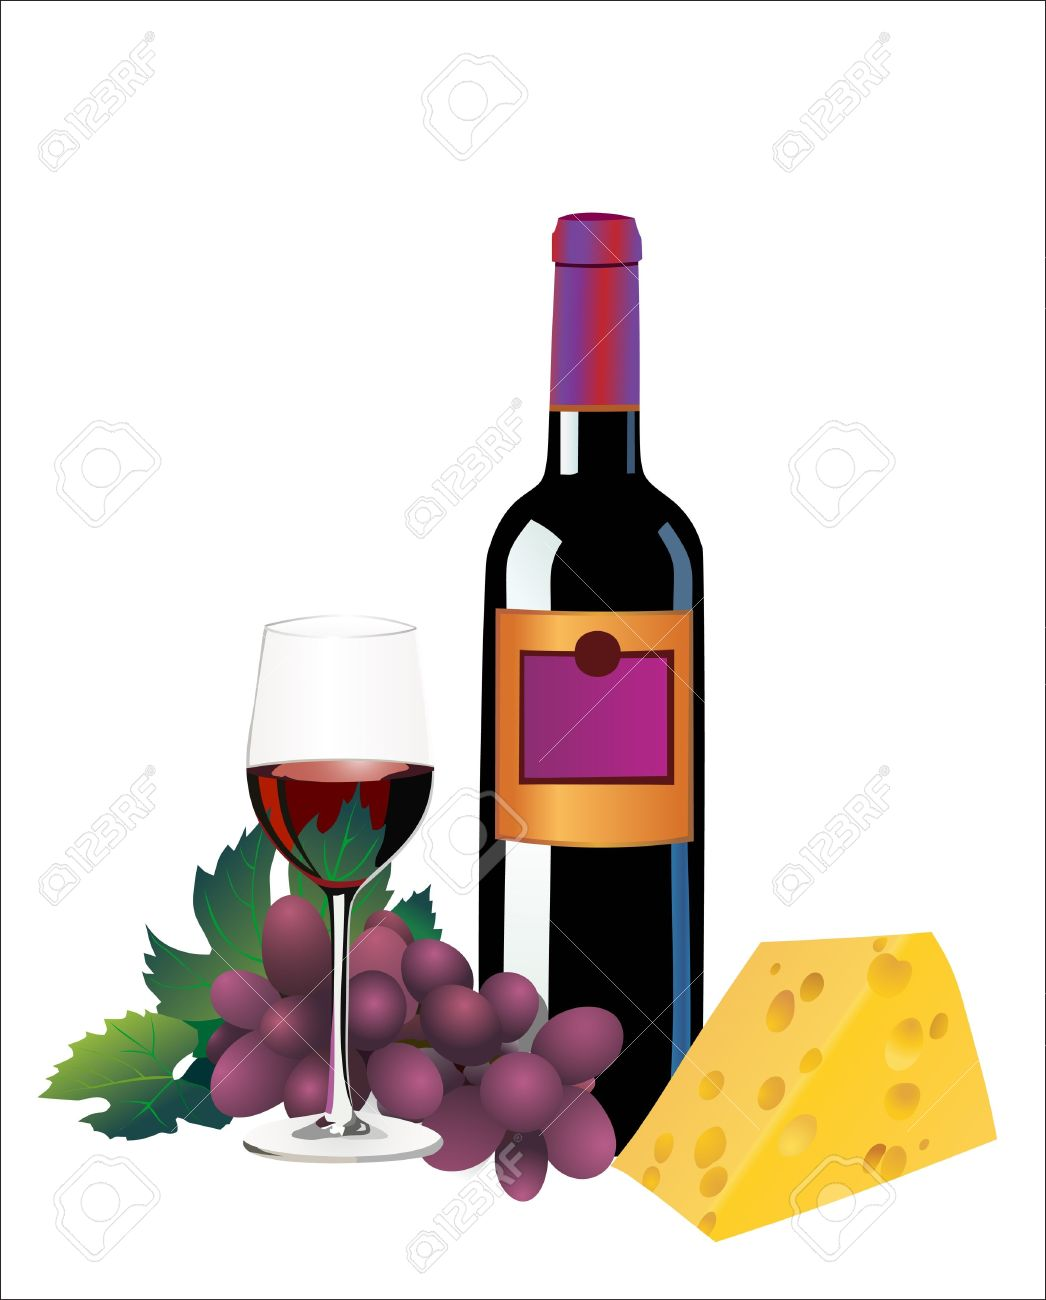 Wine and cheese clipart 1 » Clipart Station.